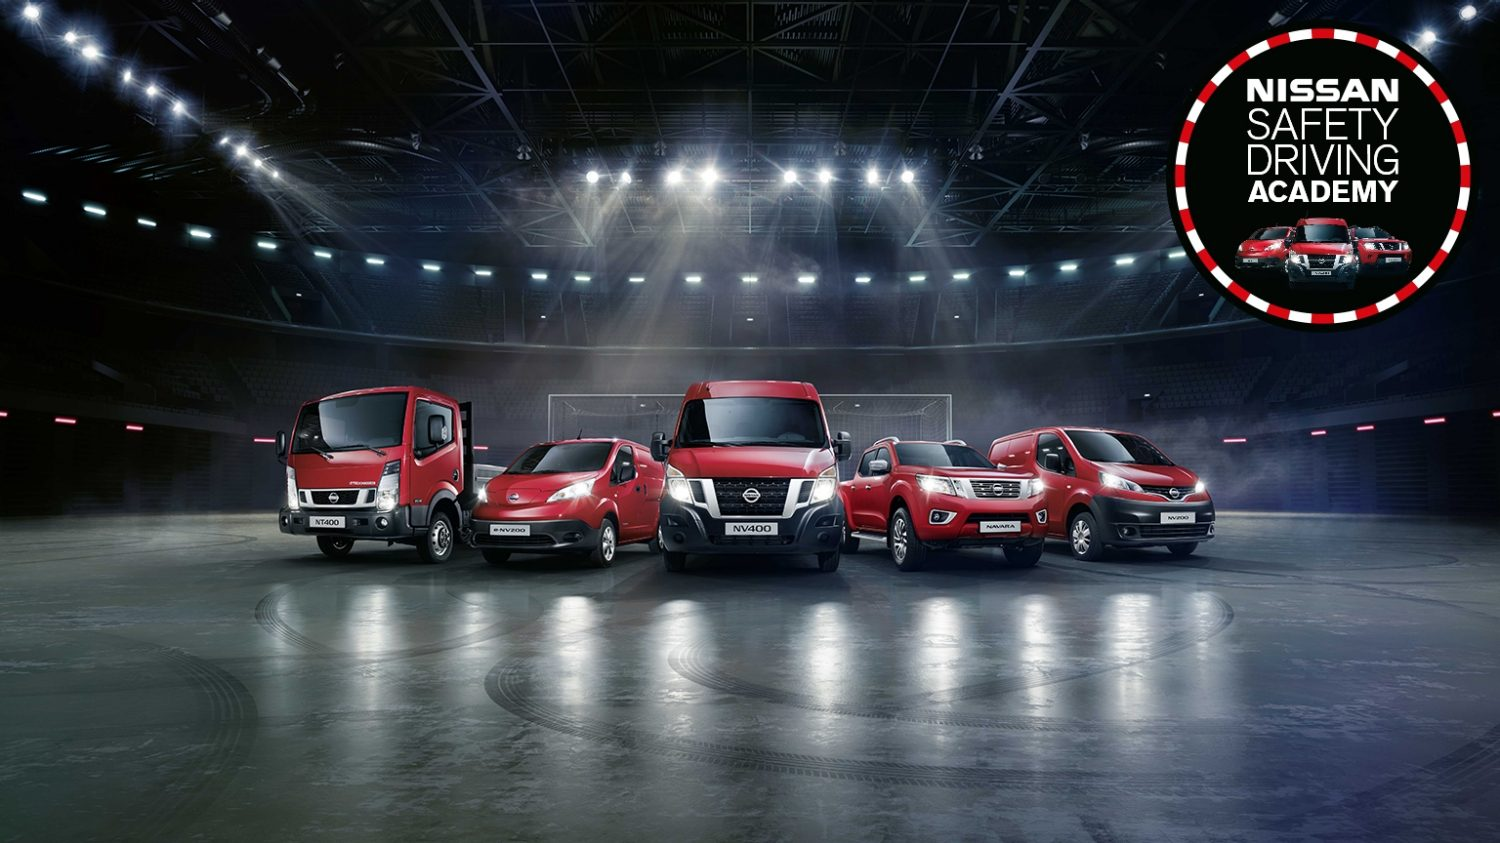 nissan-safety driving academy-header